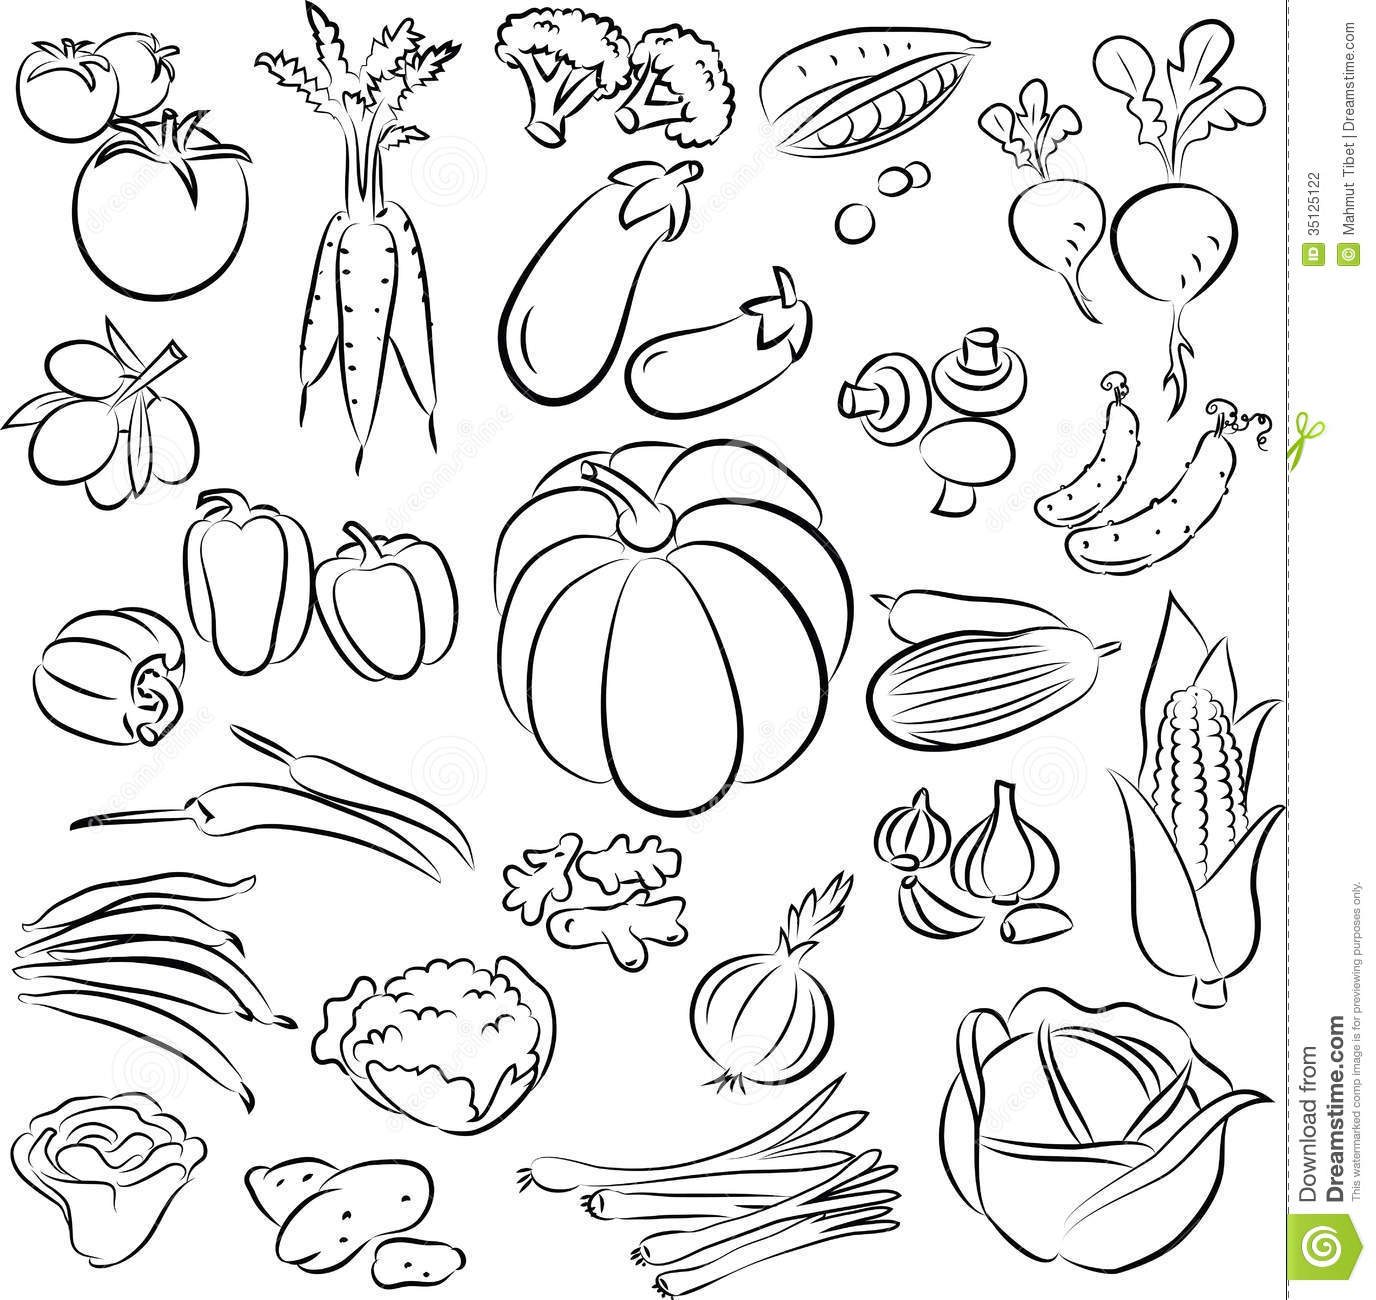 Line Art Vector Illustrator : Vegetables set stock photography image